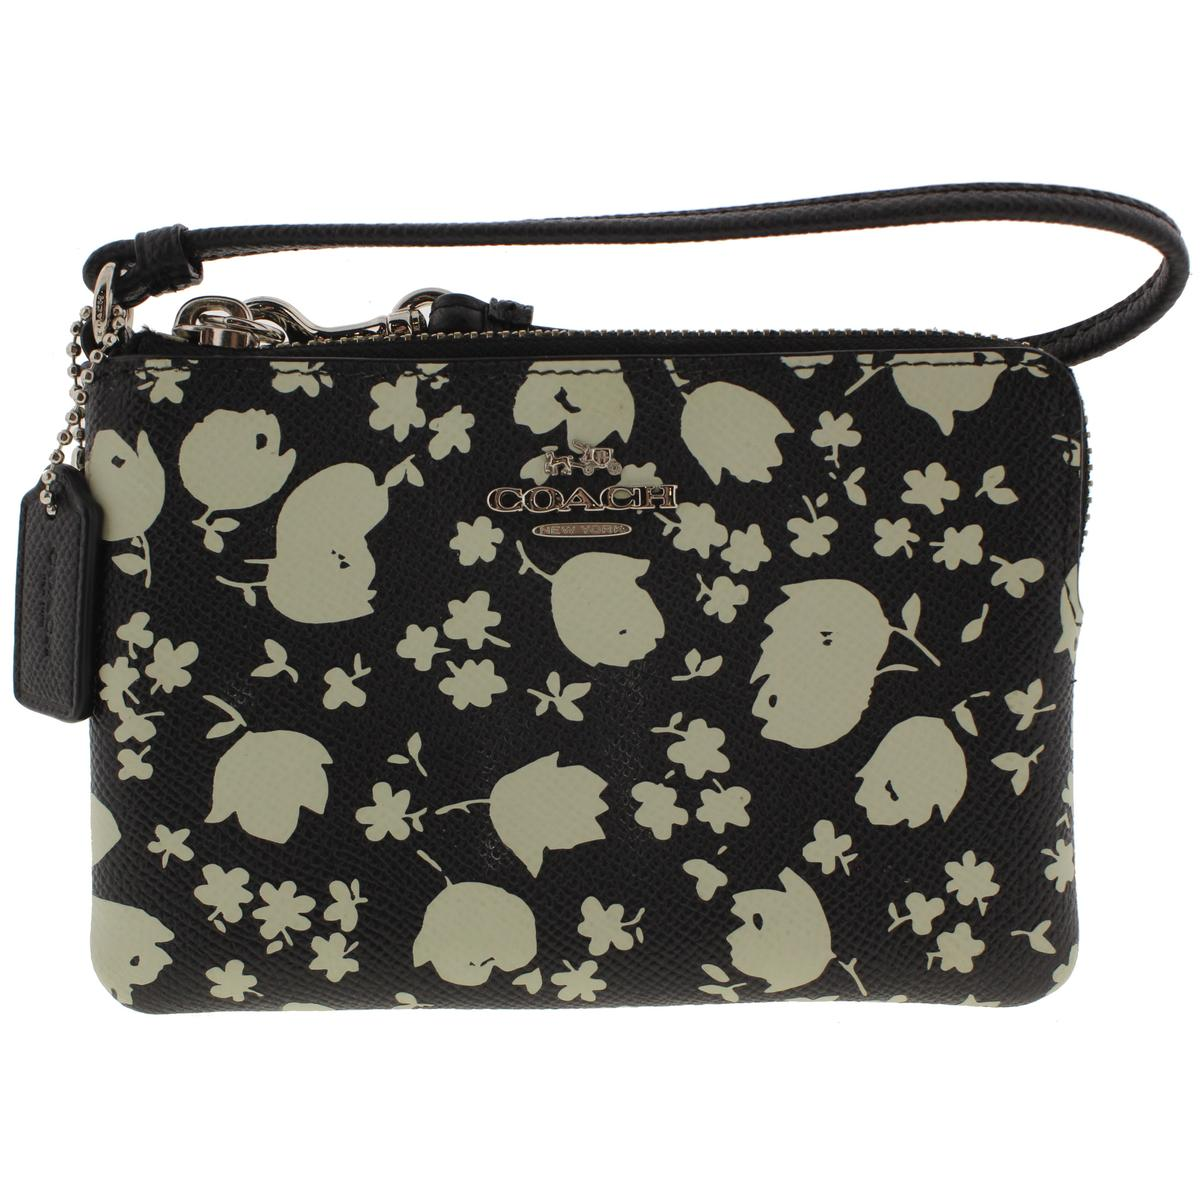 Coach Womens Leather Printed Wristlet Wallet